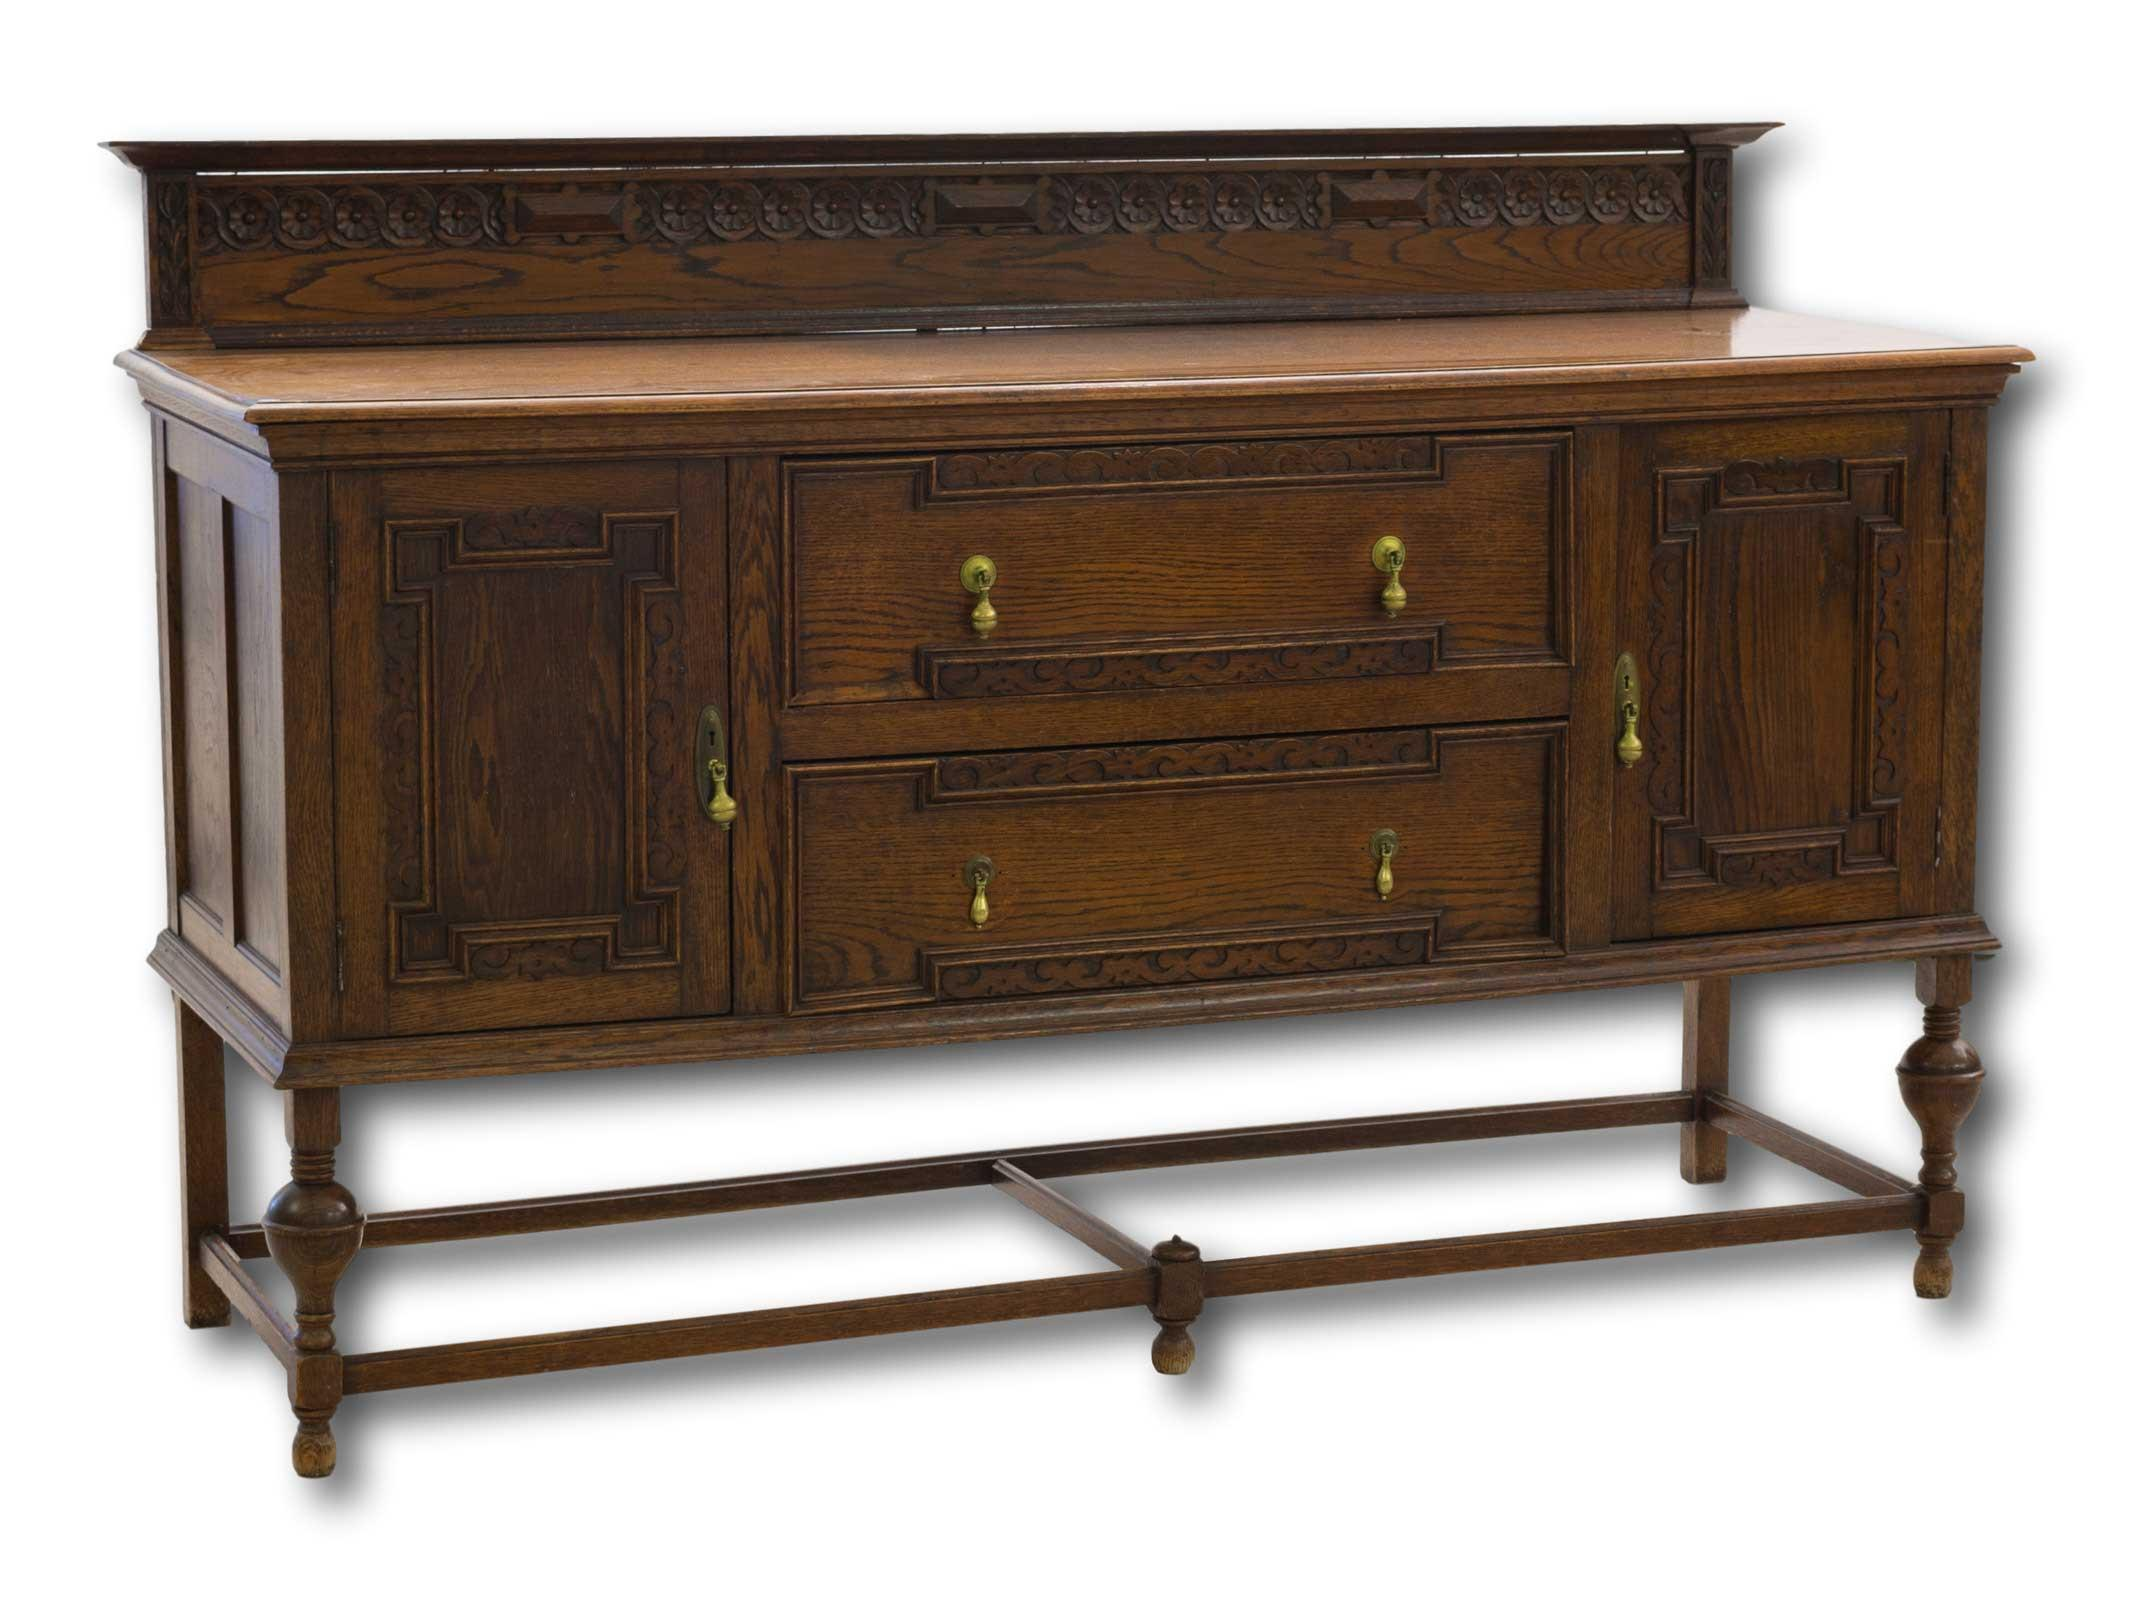 An Early 20th Century Carved Oak Sideboard with Brass Handles, 120 x 185 x 61